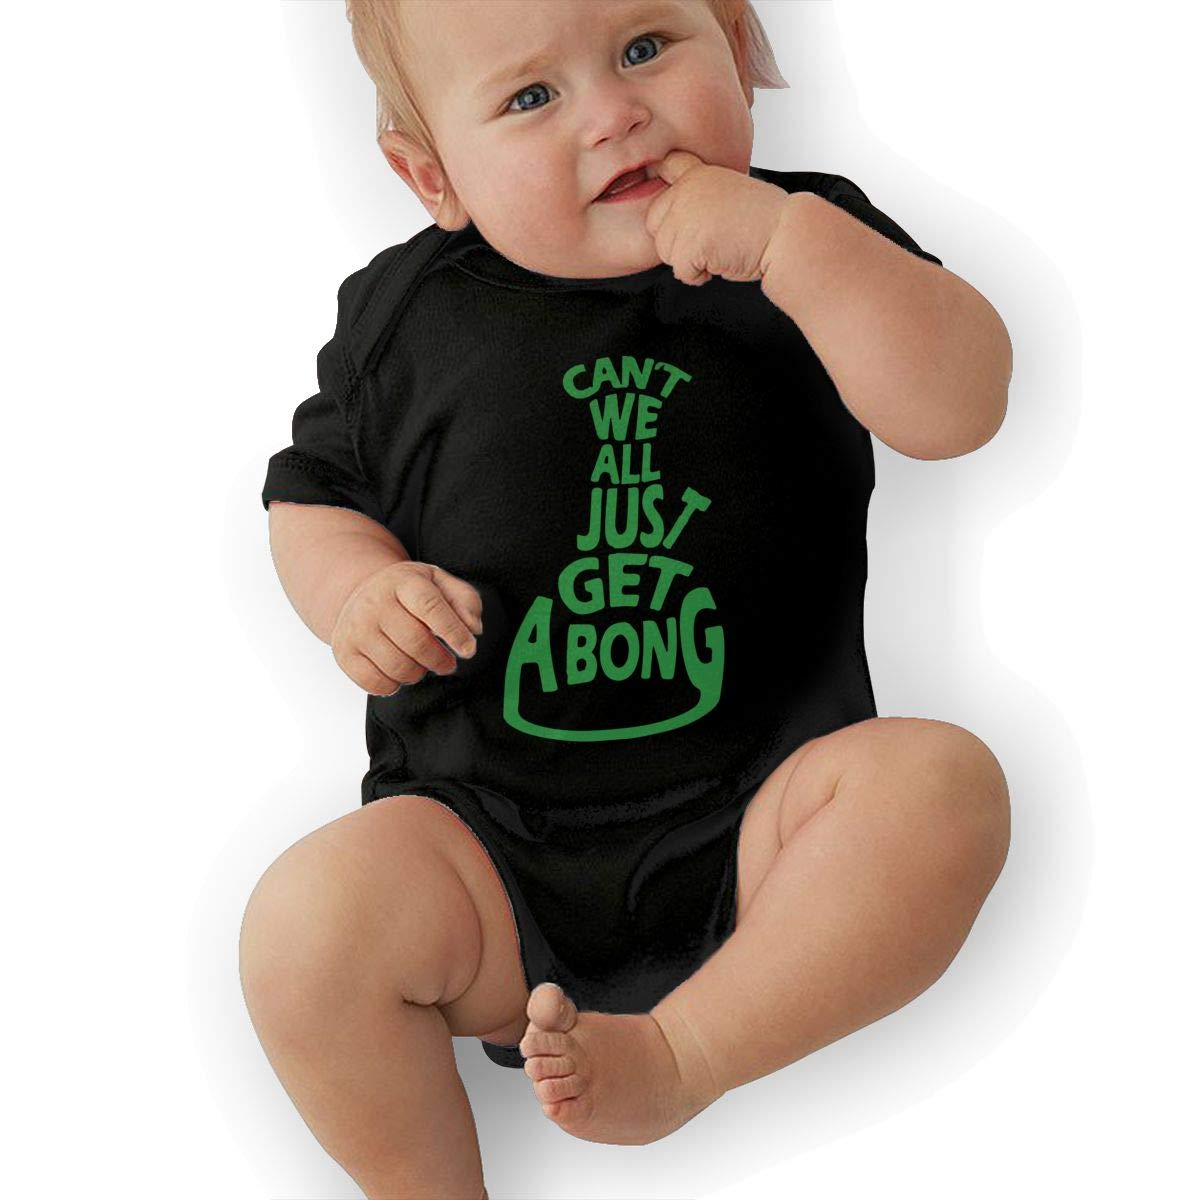 U88oi-8 Short Sleeve Cotton Rompers for Baby Girls Boys Cute Cant We All Just Get A Bong Jumpsuit